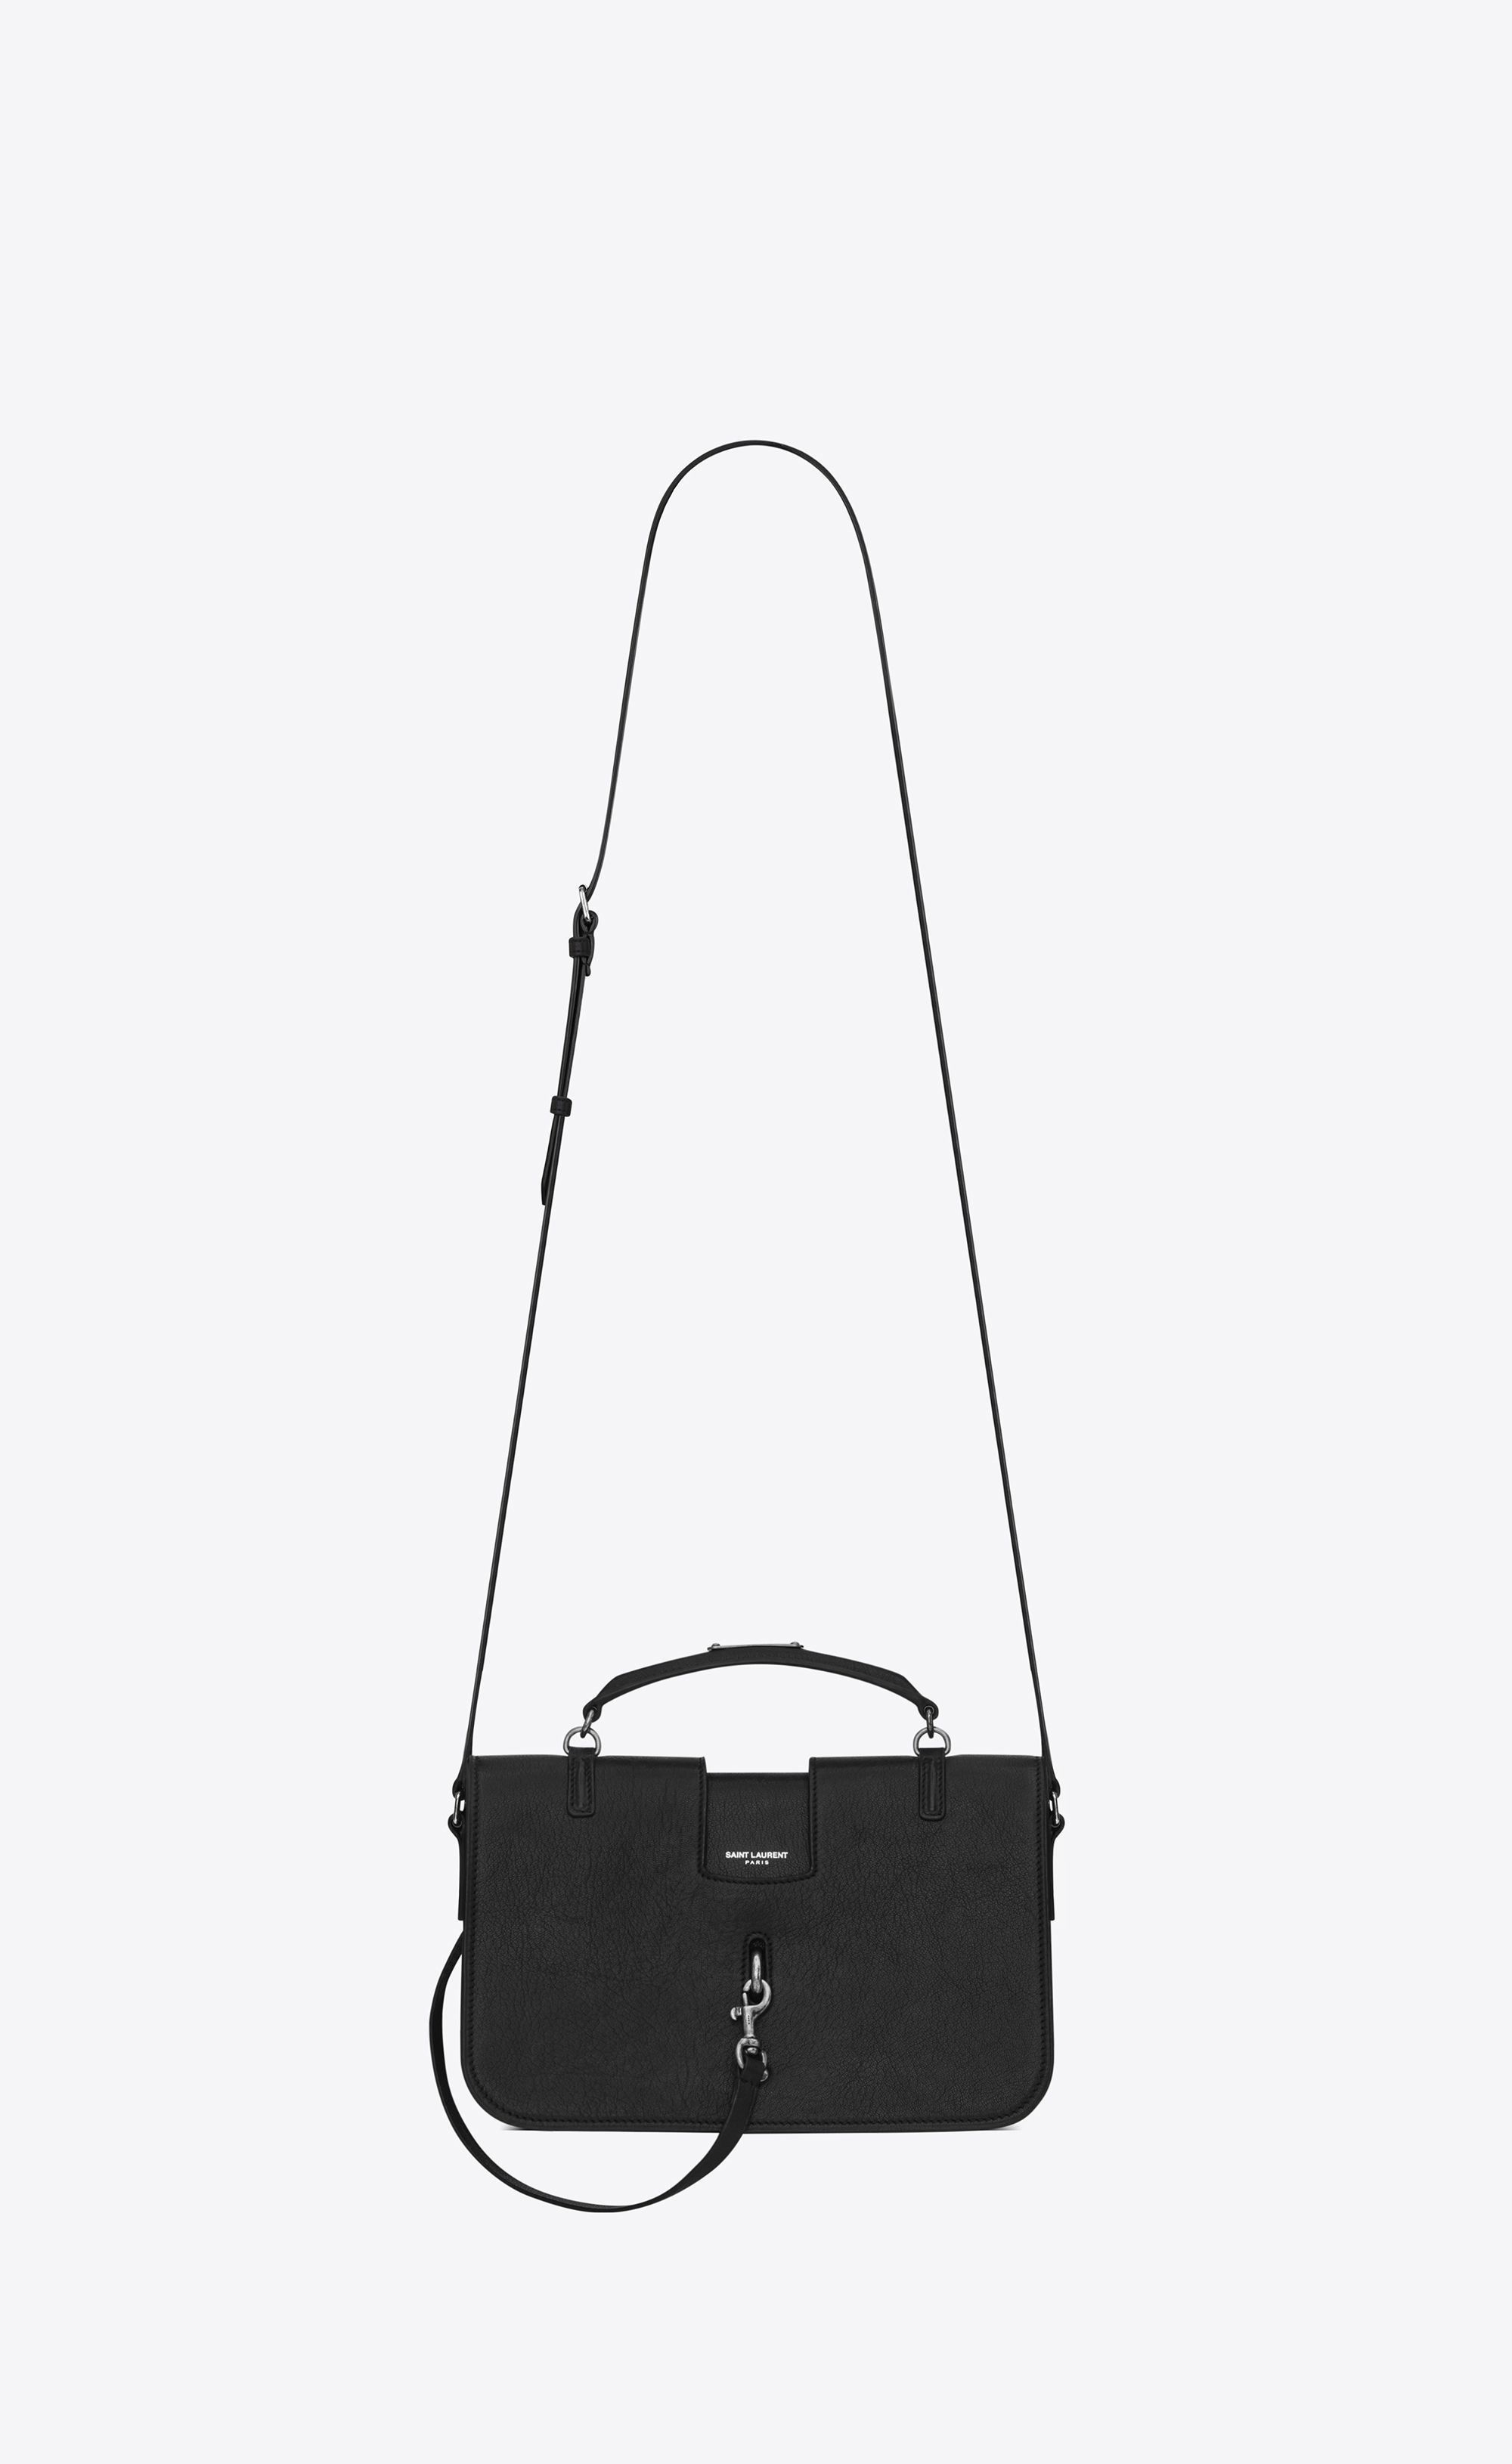 Saint Laurent Medium Charlotte Messenger Bag In Black Leather  f5f2b93aca1b8